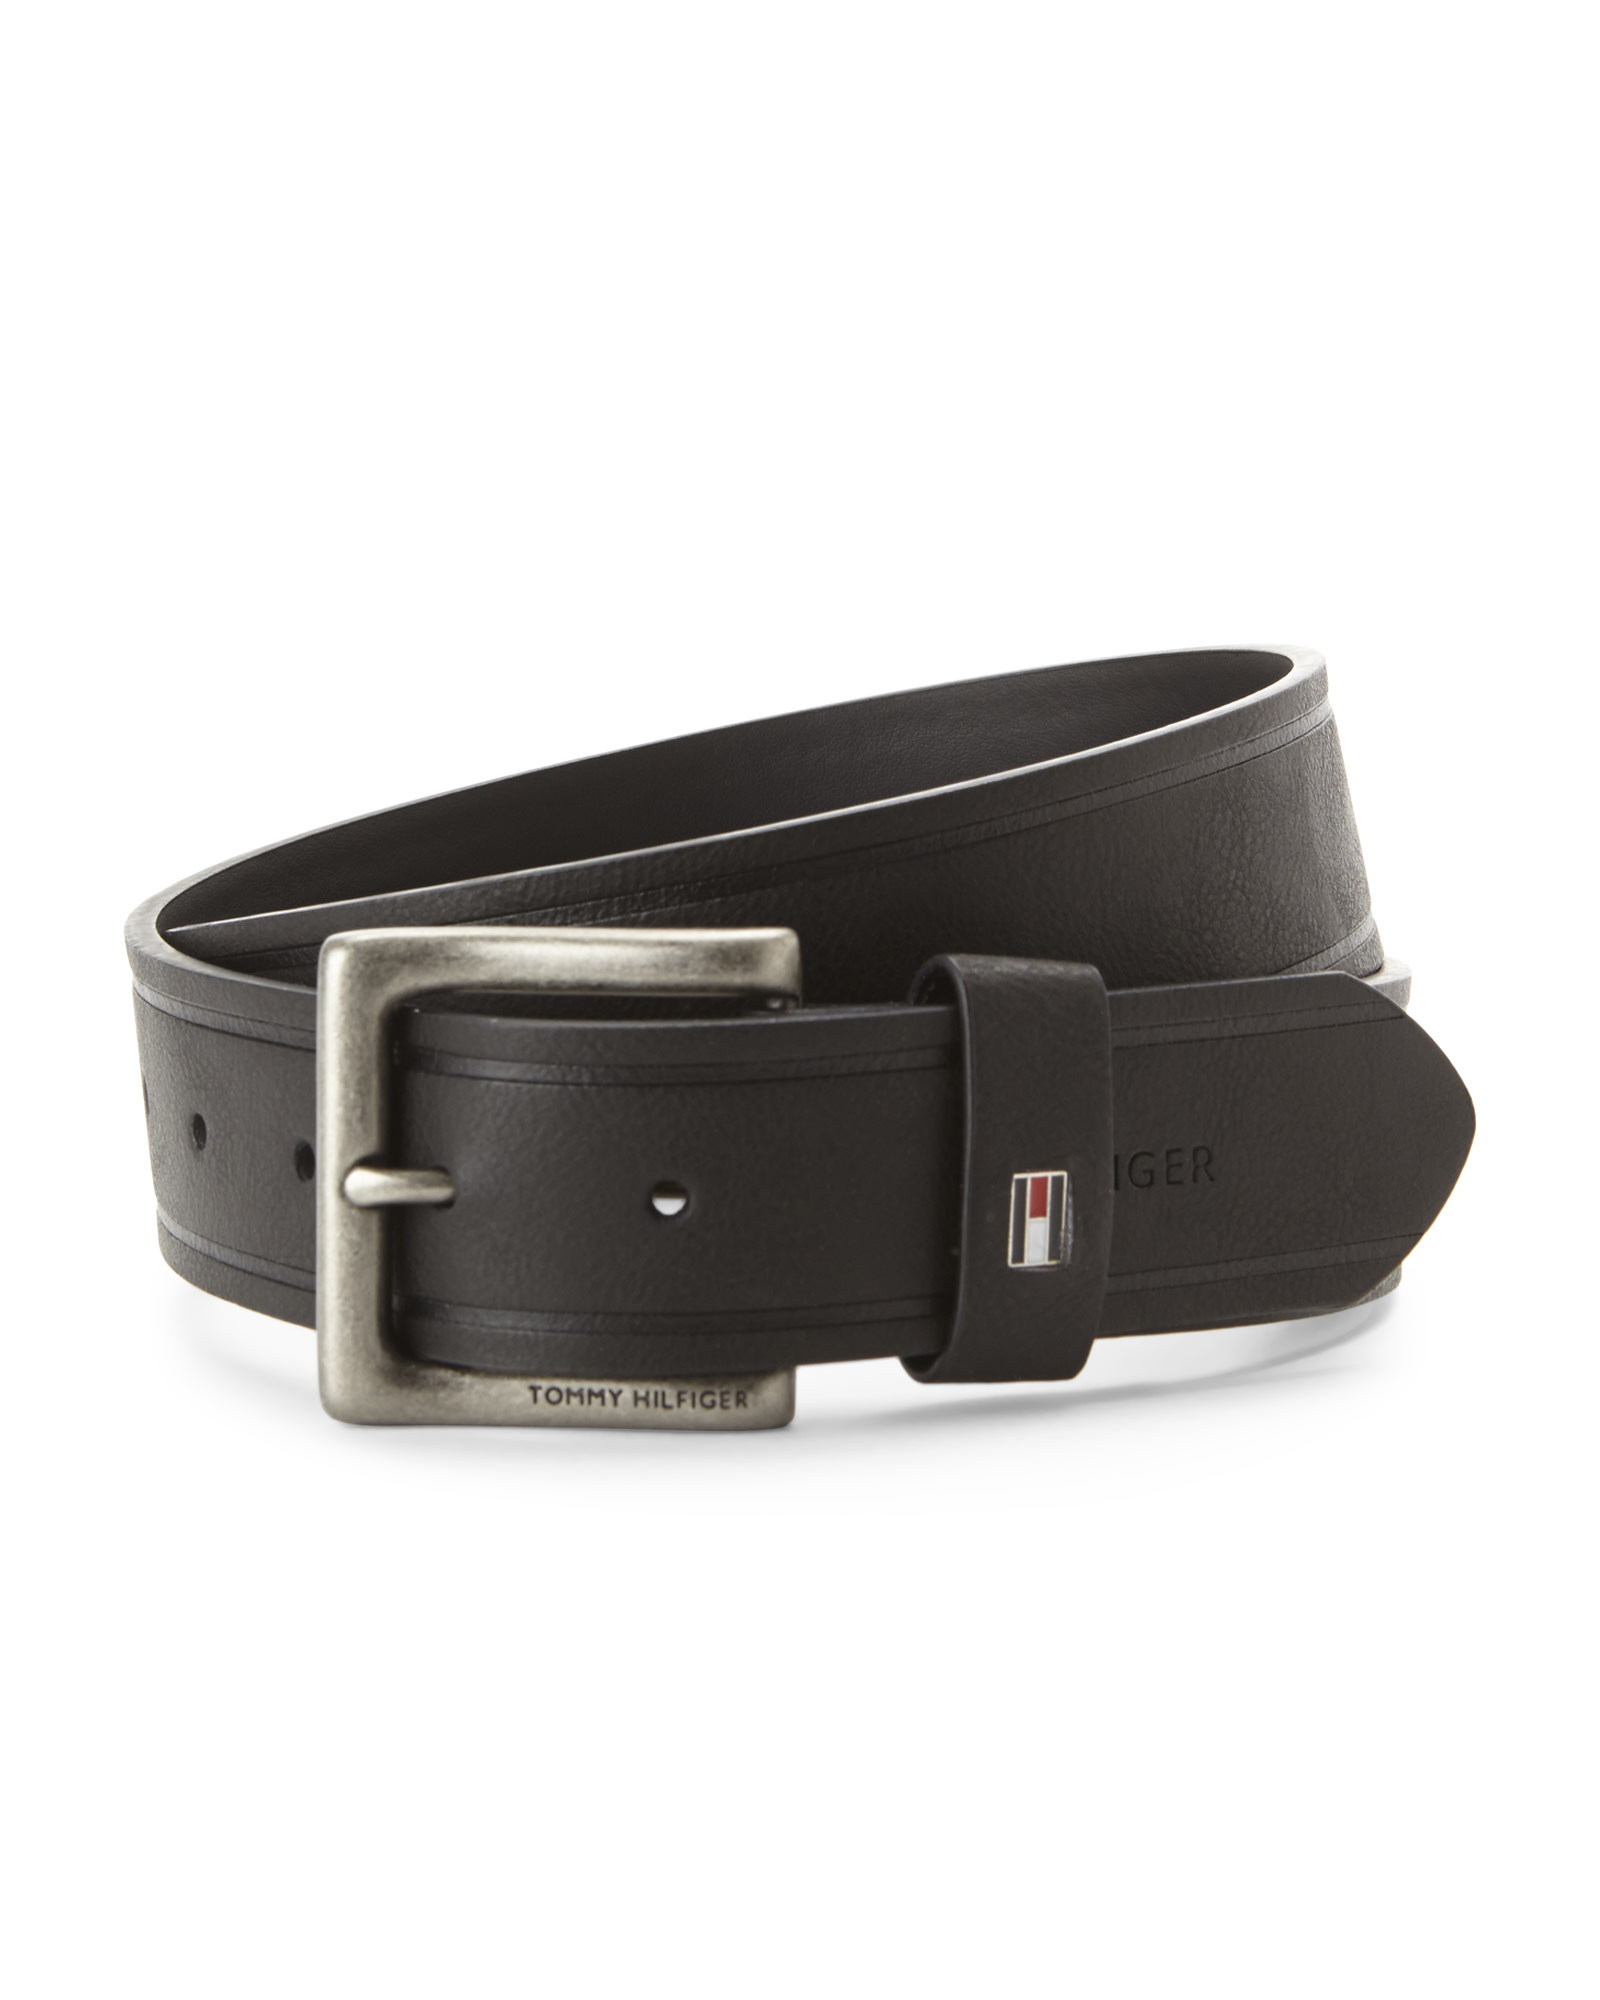 Small Leather Goods - Belts Gaud</ototo></div>                                   <span></span>                               </div>             <div>                                     <div>                                             <div>                                                     <div>                                                             <div>                                                                     <ul>                                                                             <li></li>                                                                             <li>                                         <a href=